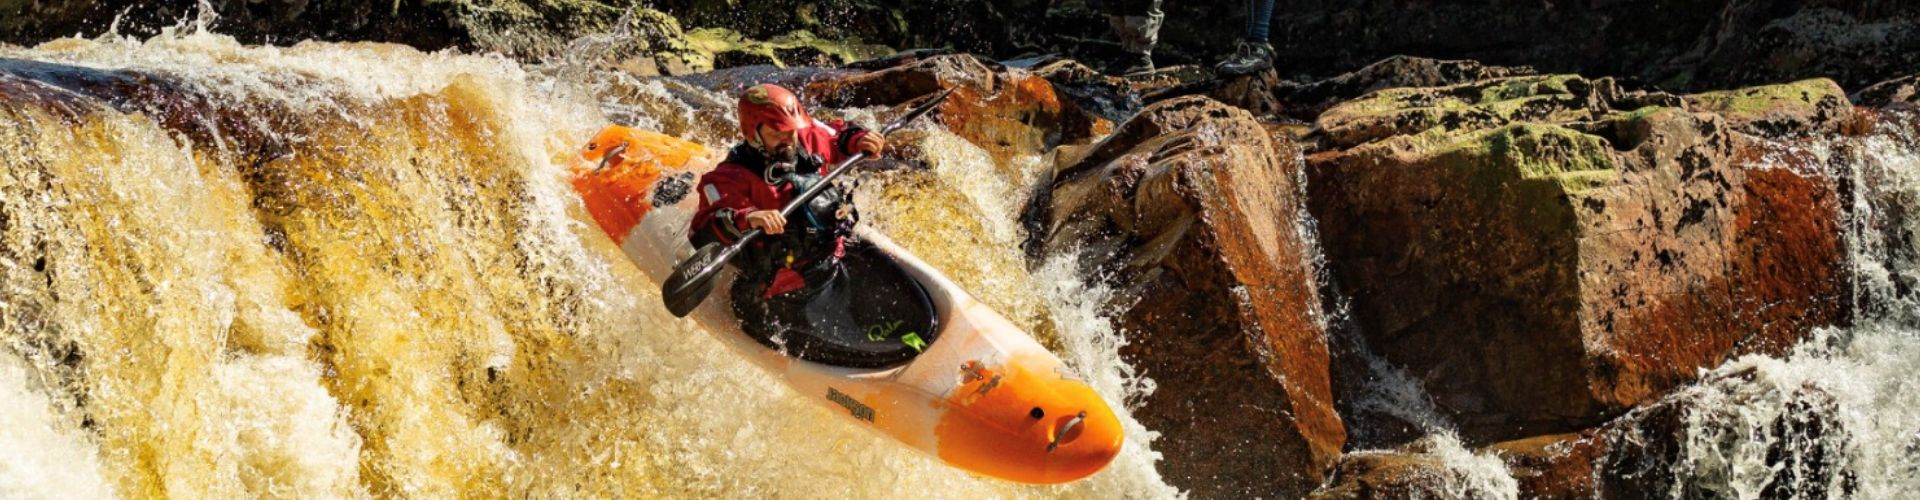 Matt Brooks kayaking down steep water rapids